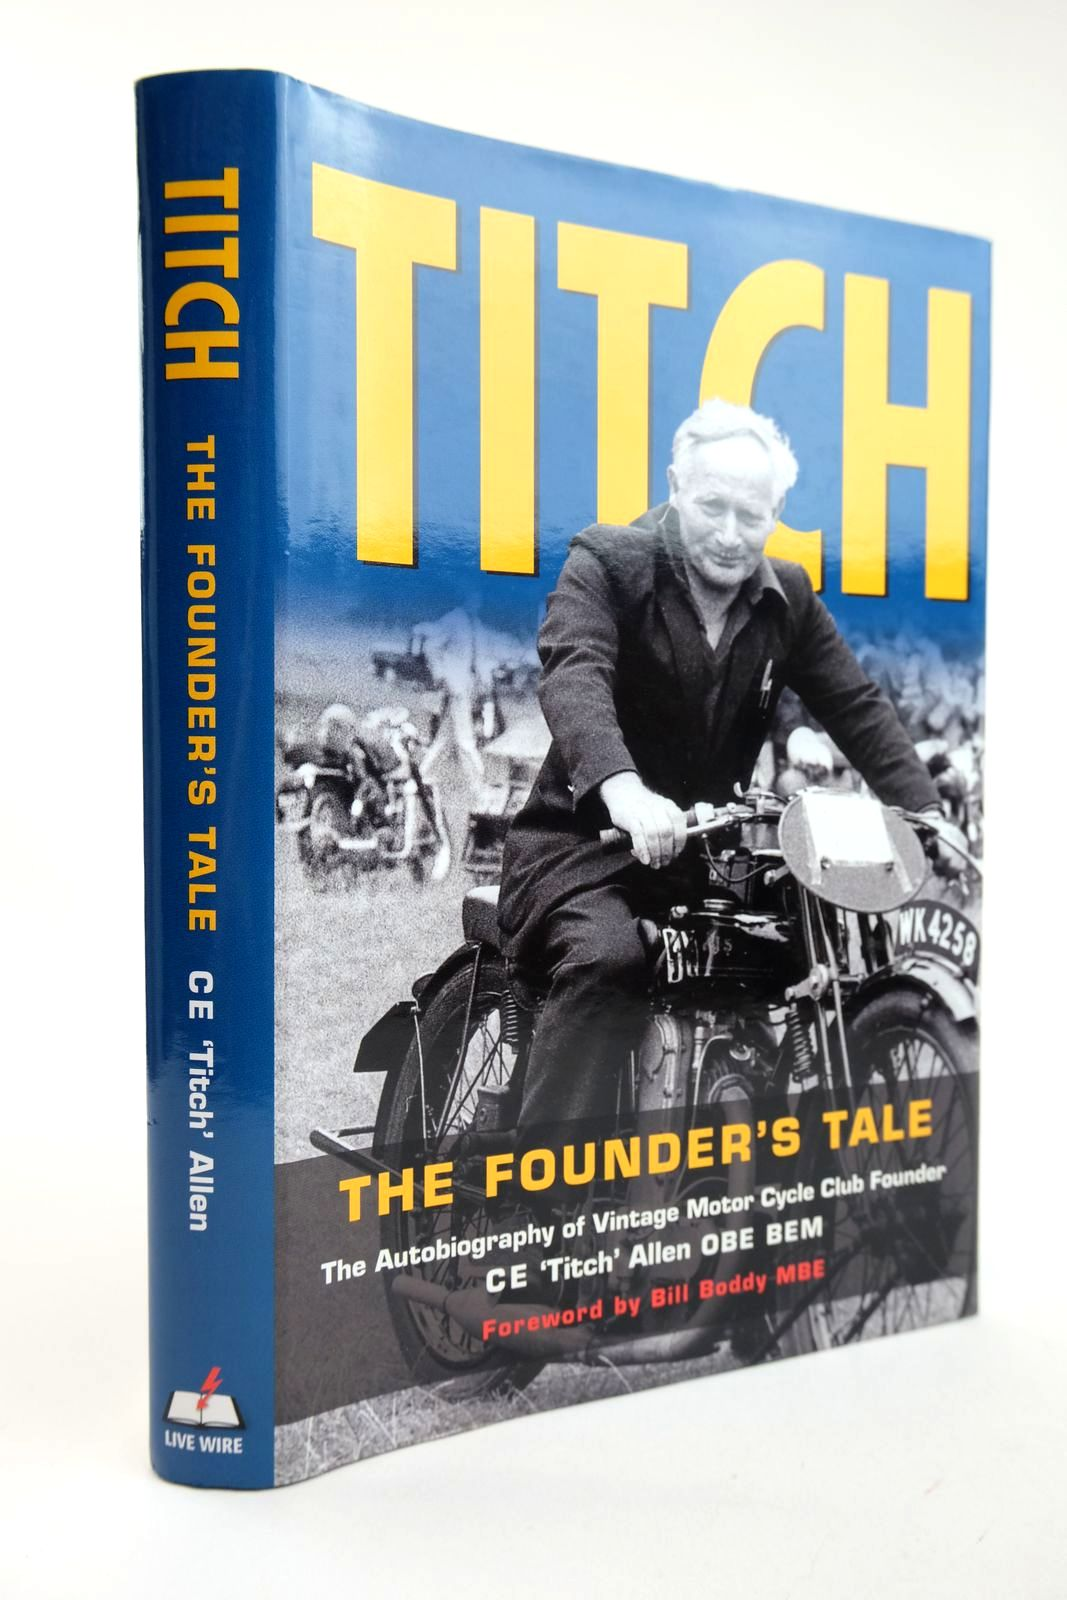 Photo of TITCH THE FOUNDER'S TALE written by Allen, C.E. published by Live Wire (STOCK CODE: 2132361)  for sale by Stella & Rose's Books